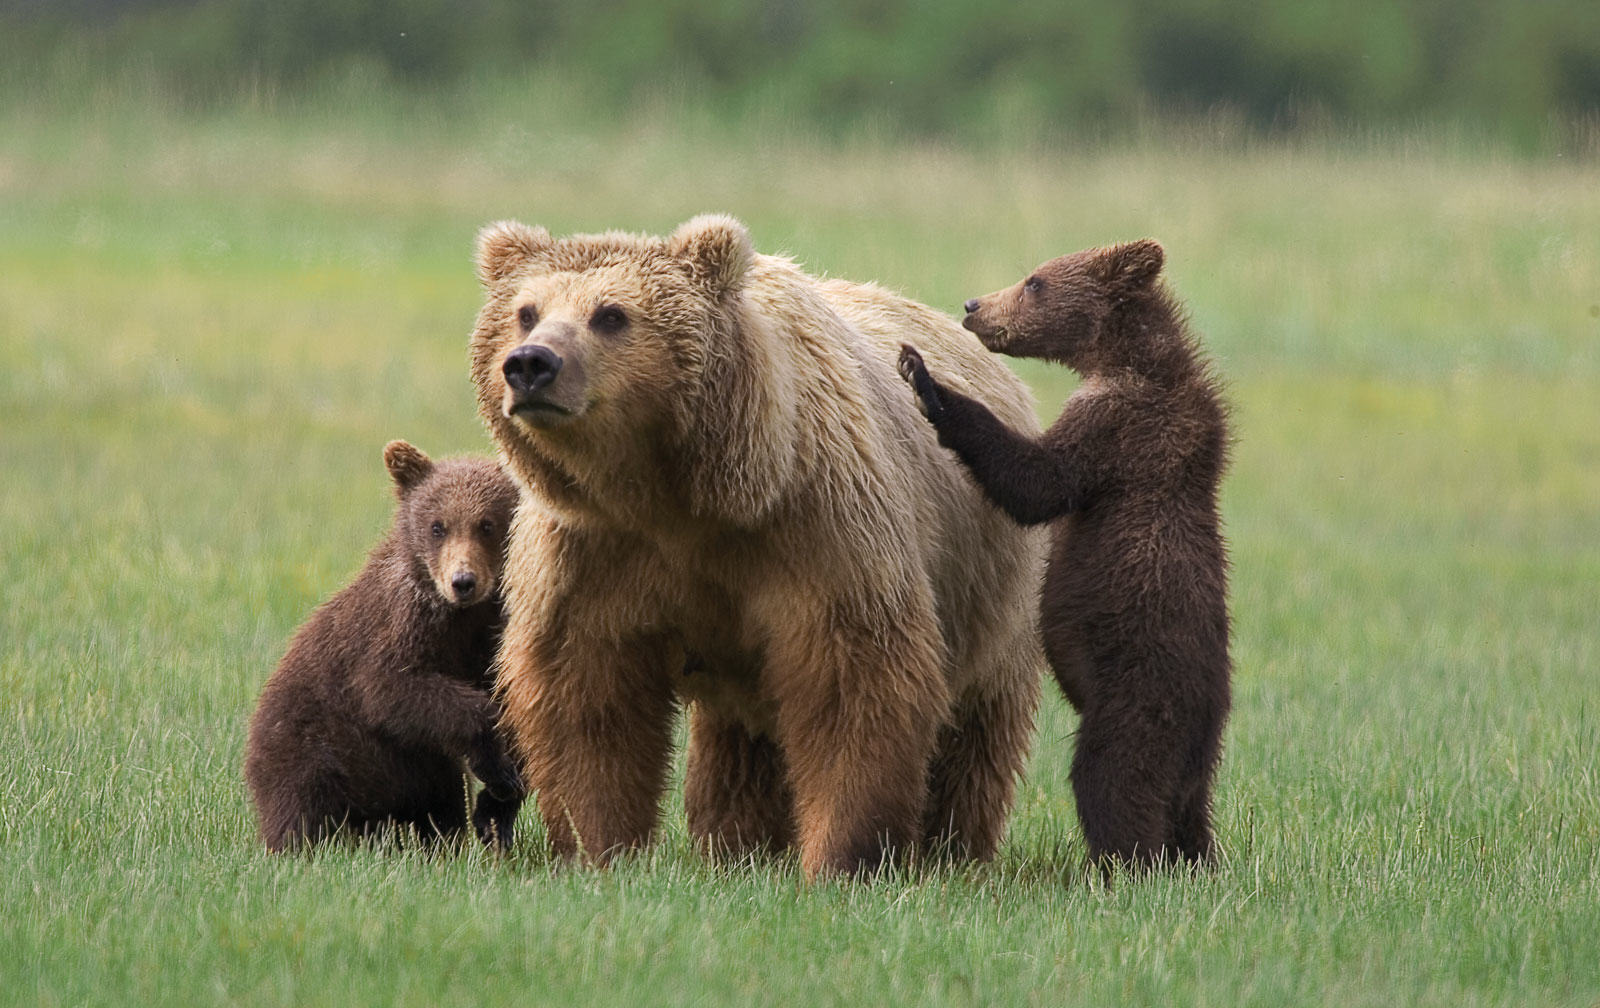 Man In Bear Costume Harasses Actual Real Life Bears In Alaska UNILAD mom grizzly8